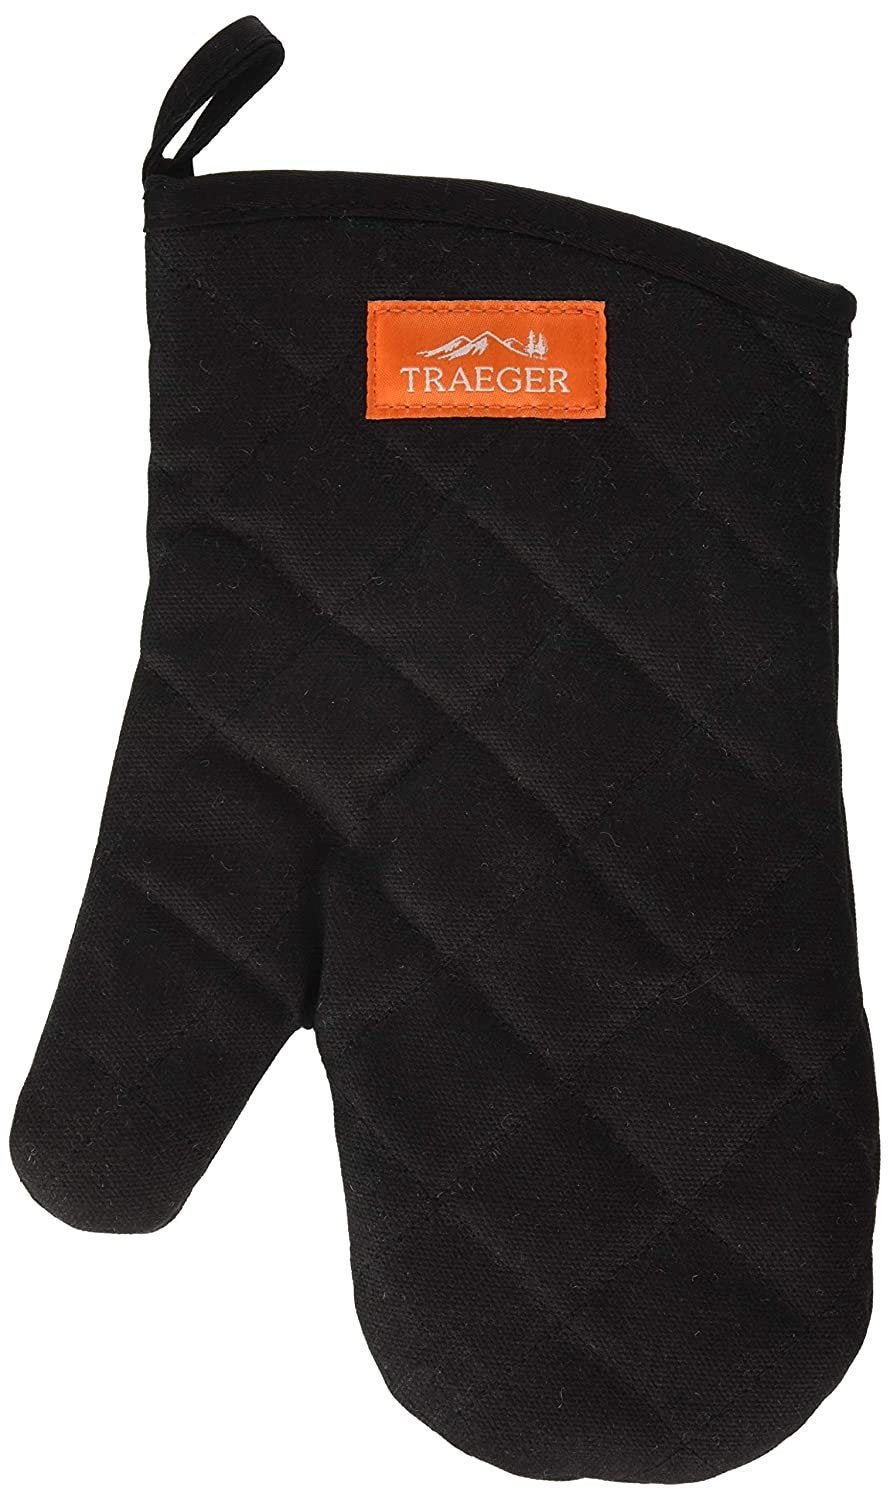 Creative Living Rotherham TRAEGER BBQ MITT-BLACK CANVAS & LEATHER - Creative Outdoor Living